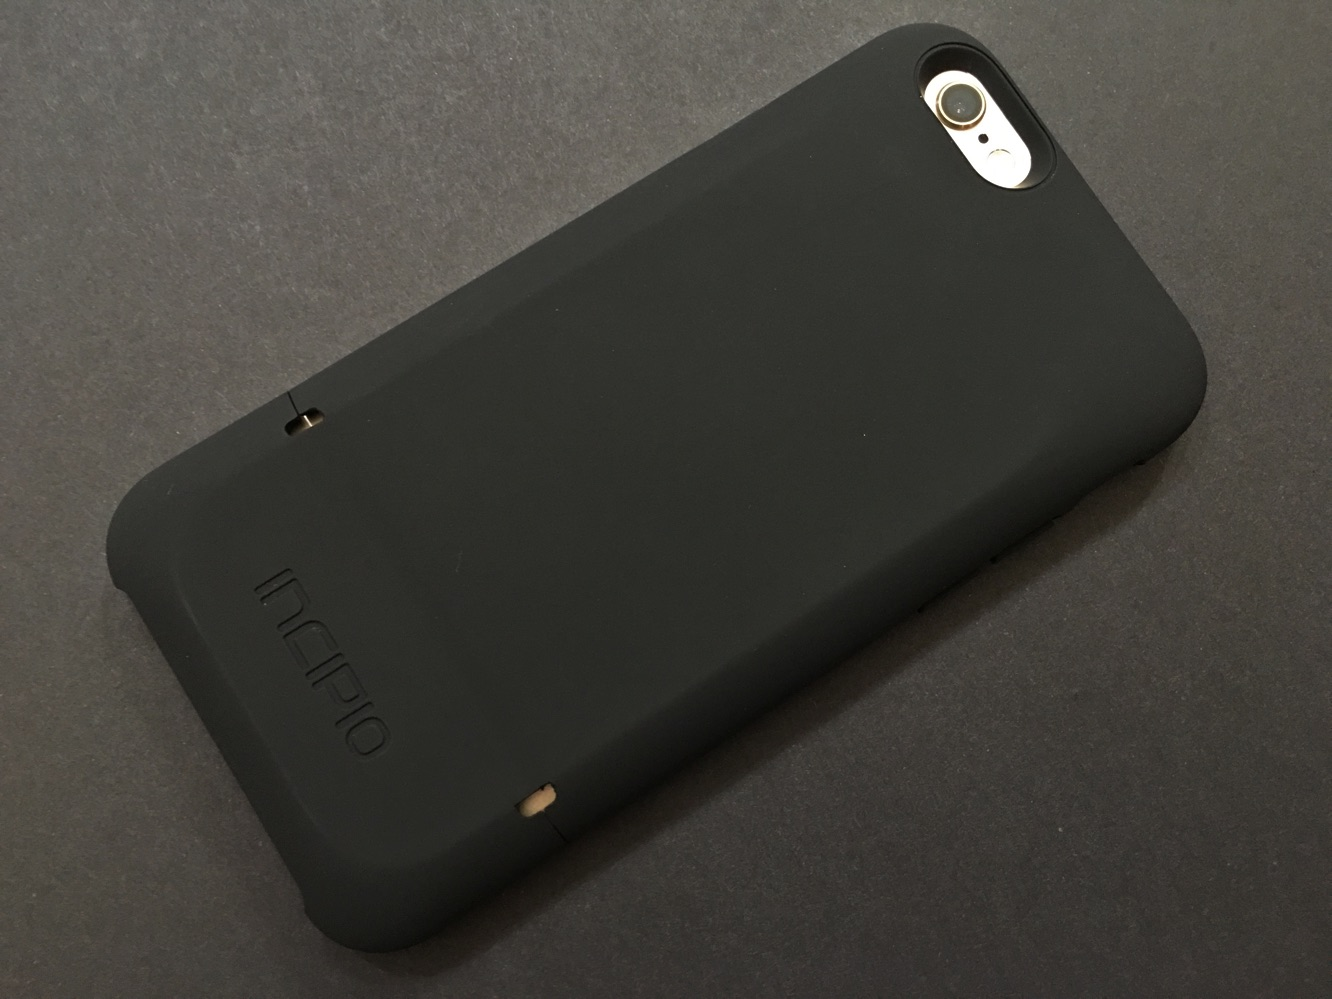 Review: Incipio Stashback for iPhone 6/6s